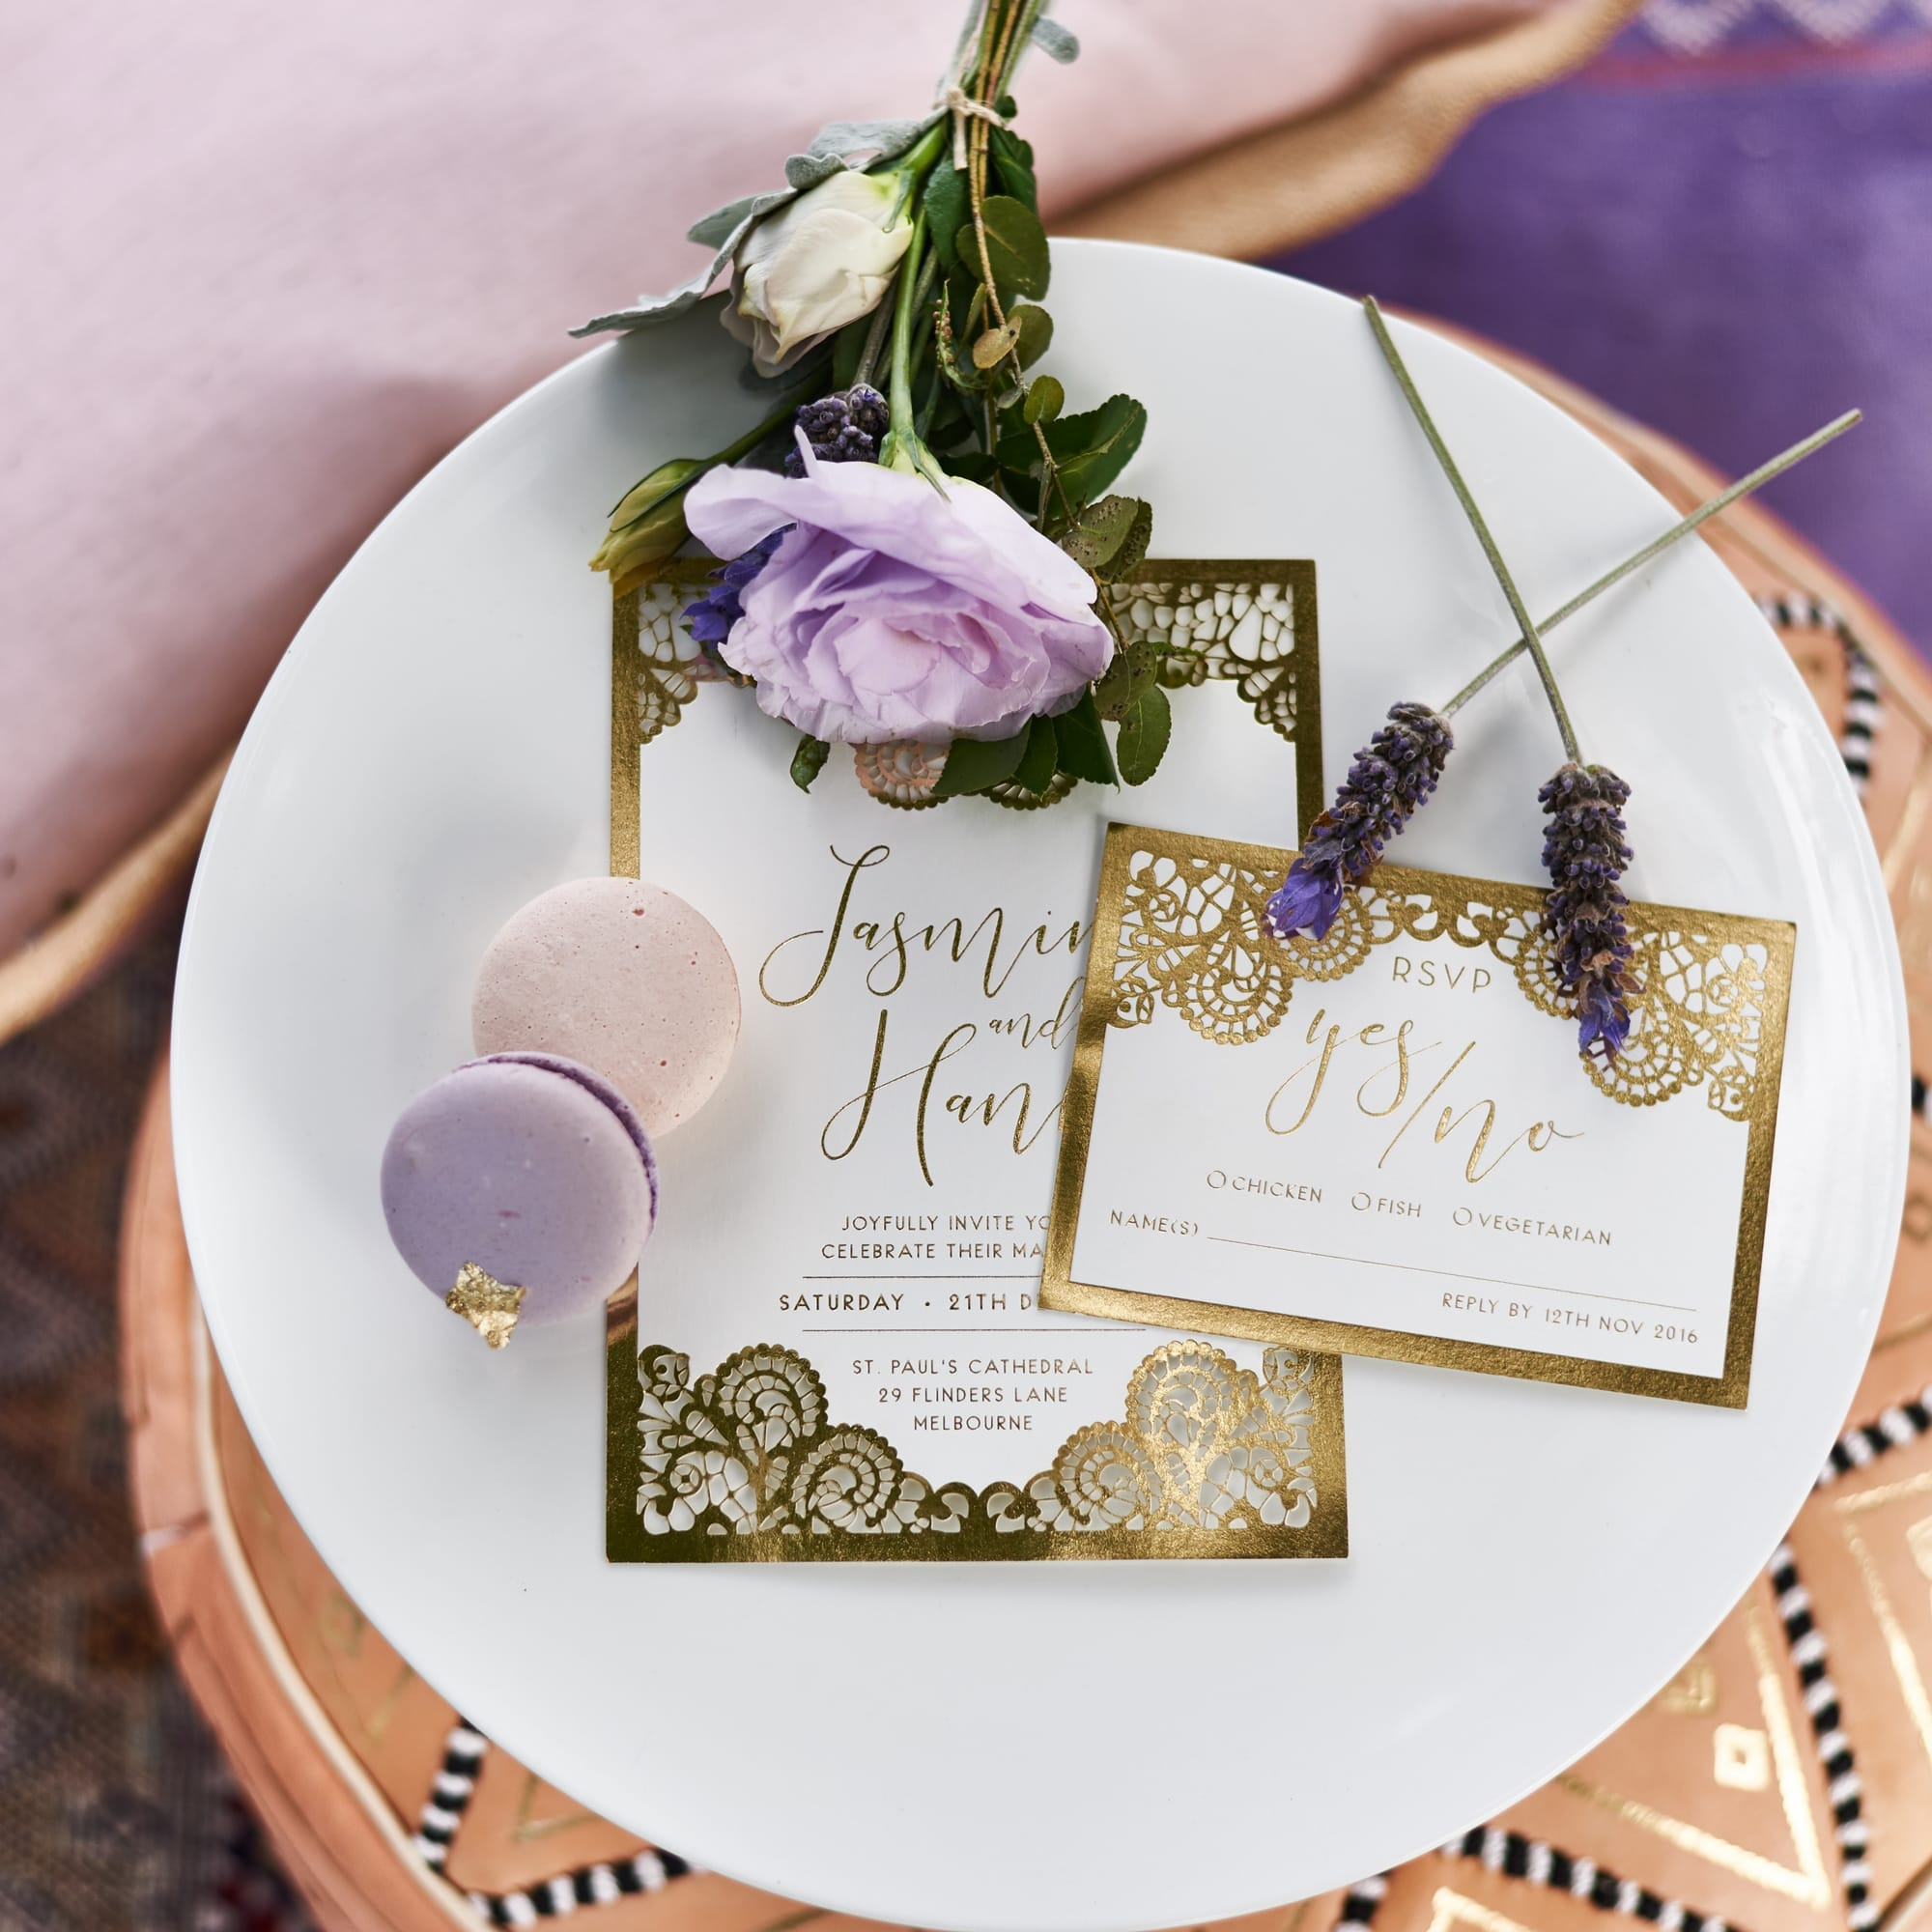 Amethyst and Lavender Styled Shoot Featuring Sleeve Wedding Dress